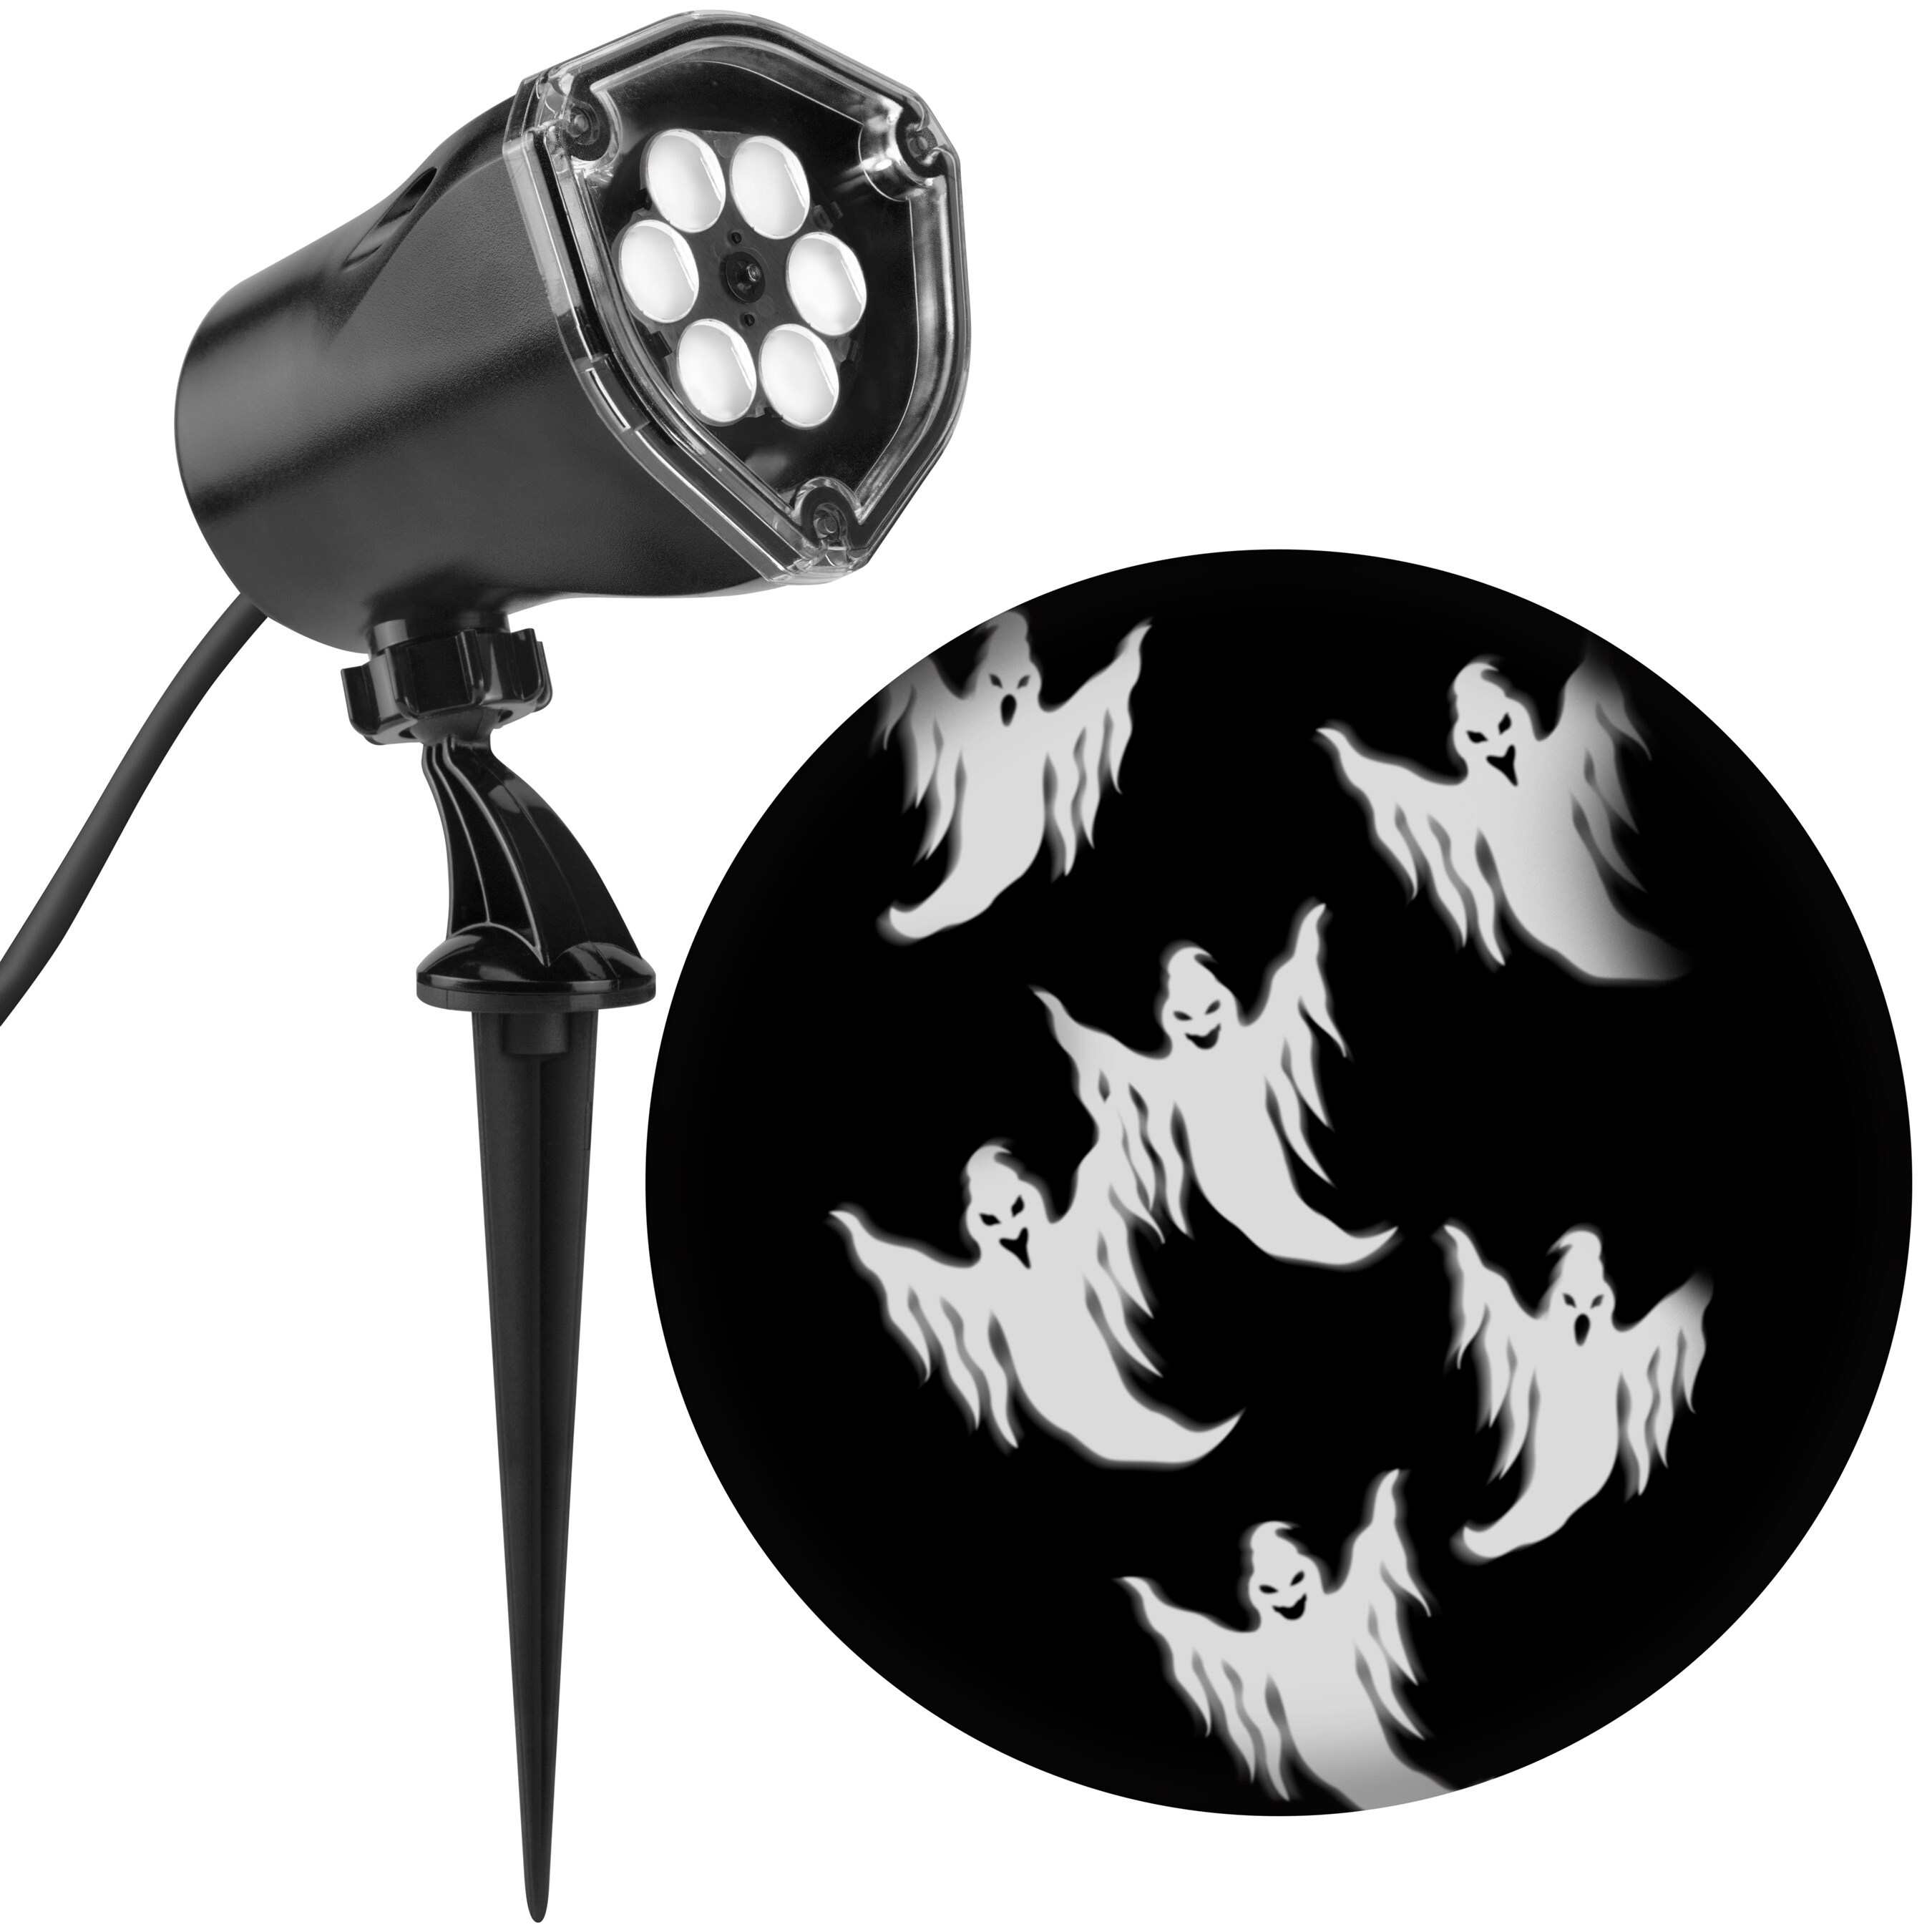 Gemmy Whirl-A-Motion Multi-Function White Led Ghosts Halloween Outdoor Stake Light Projector